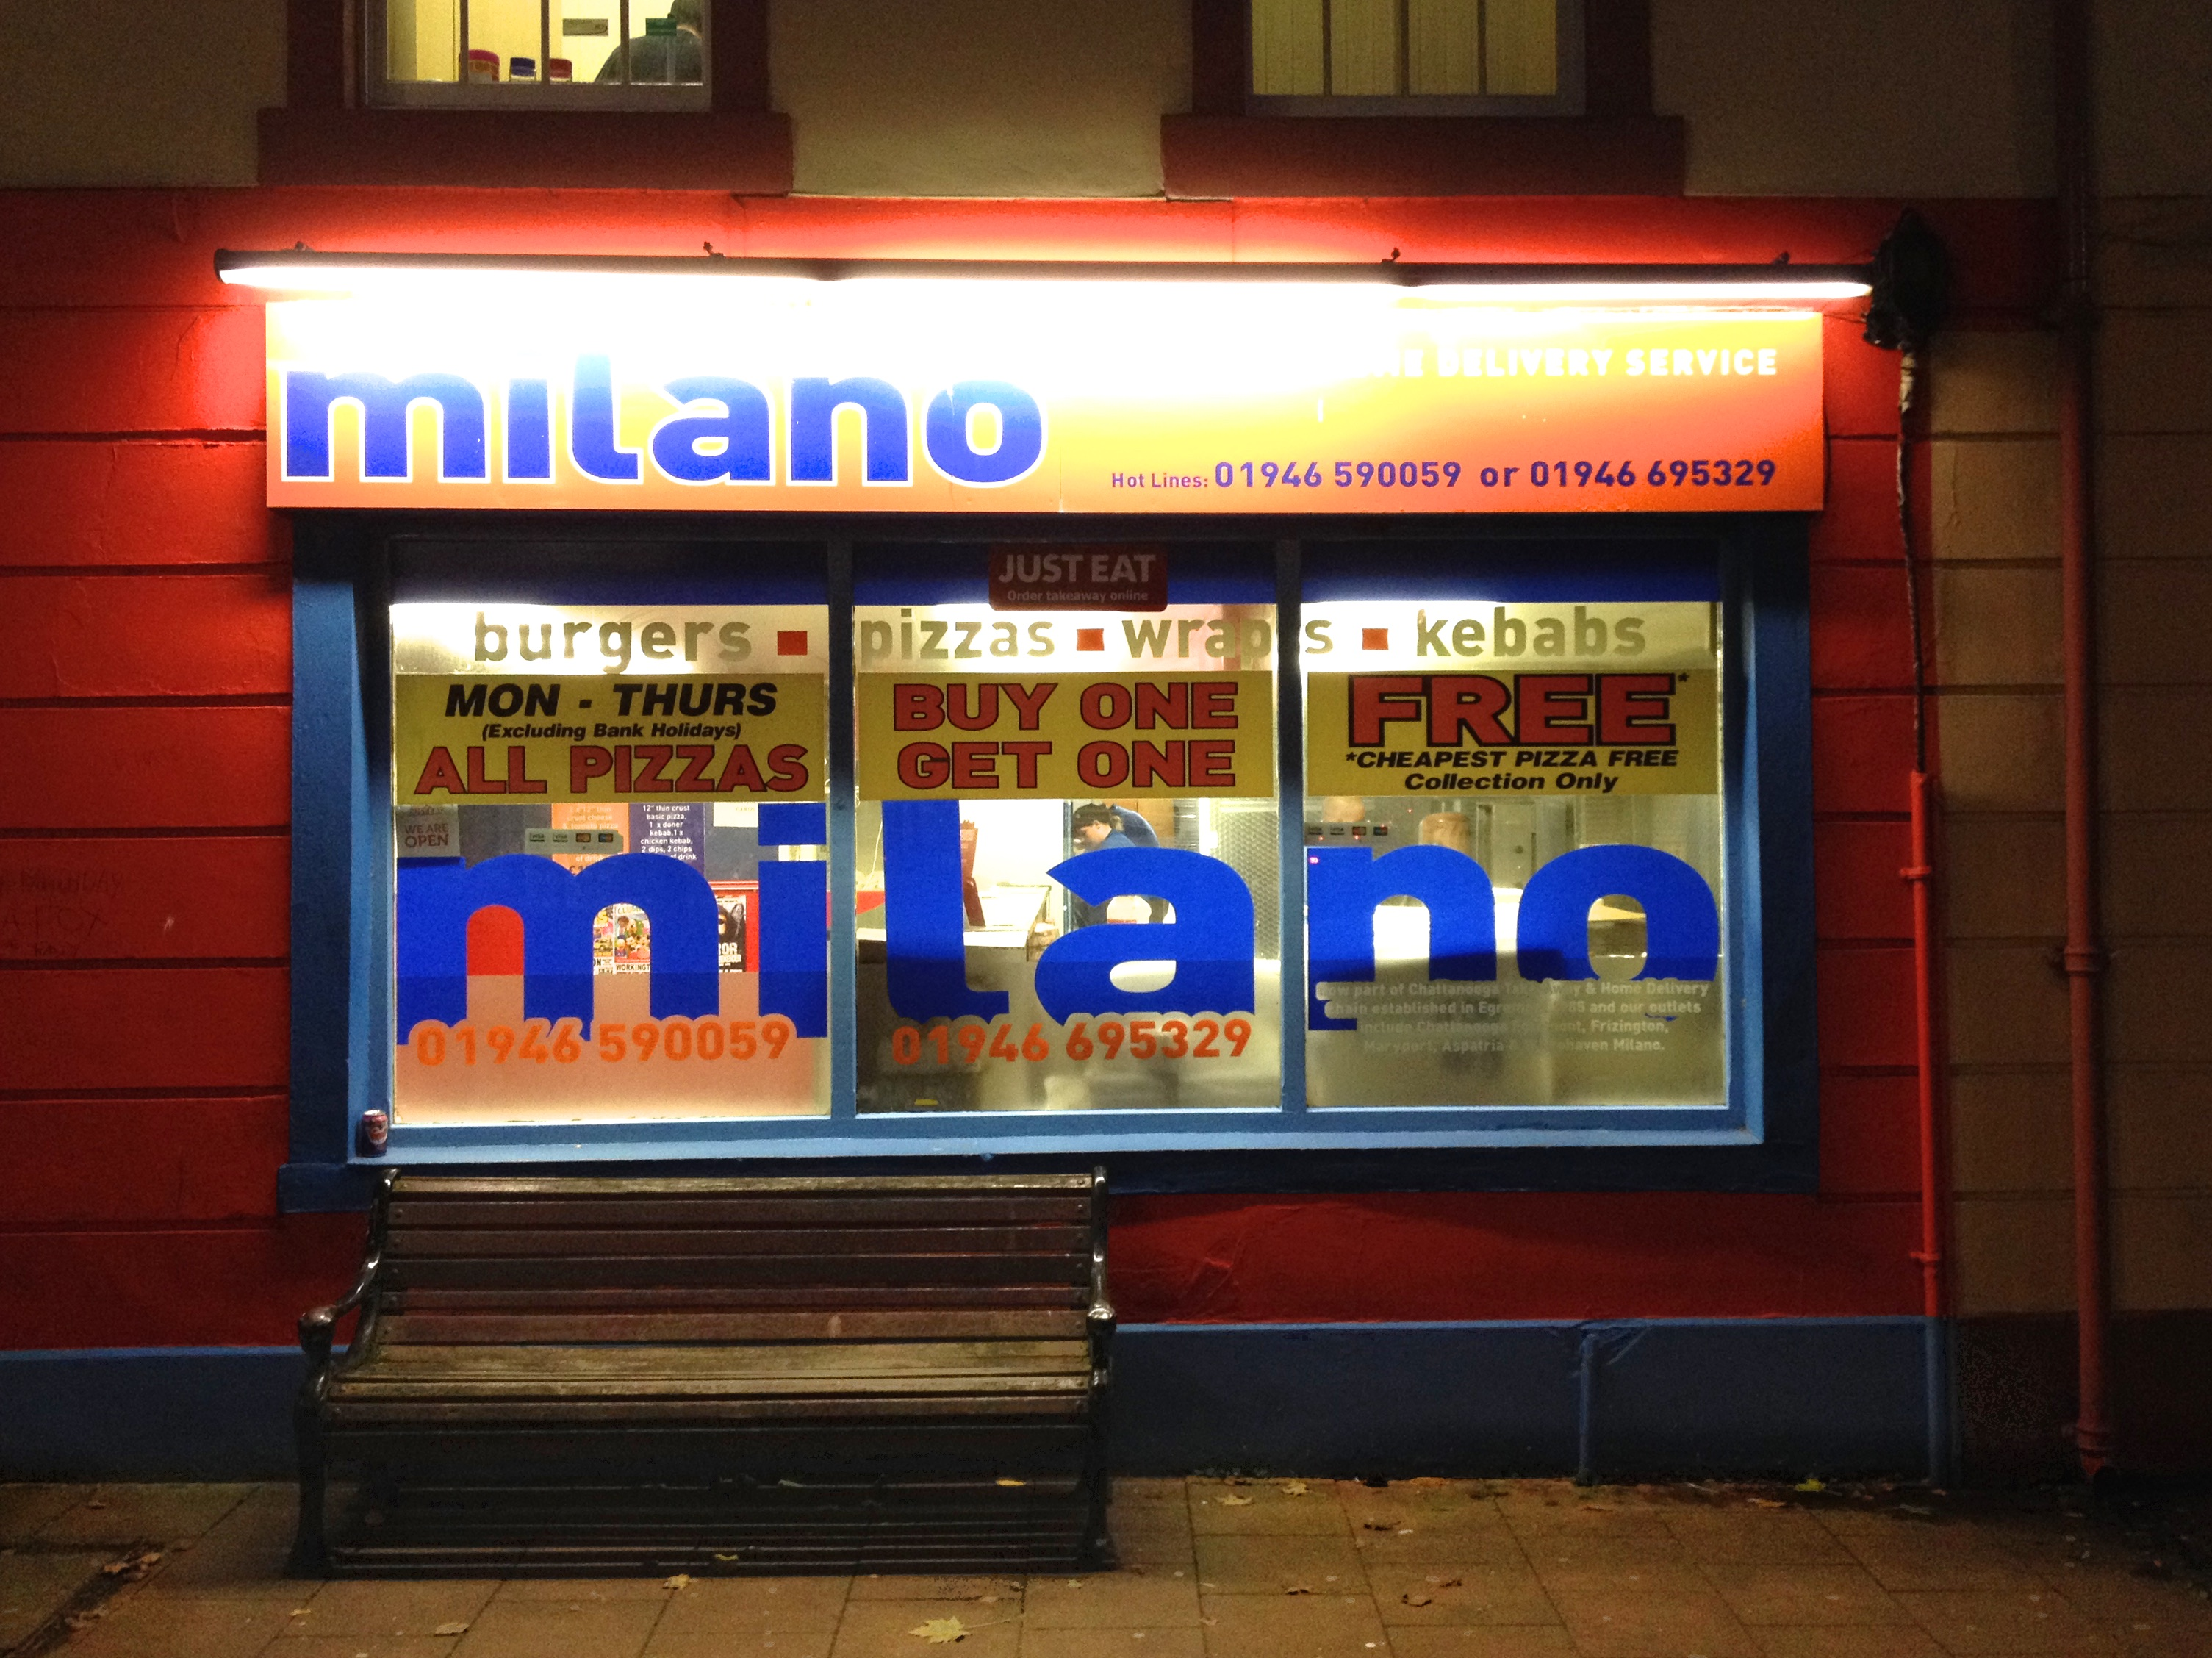 """Milano"" by morebyless is licensed under CC BY 2.0"